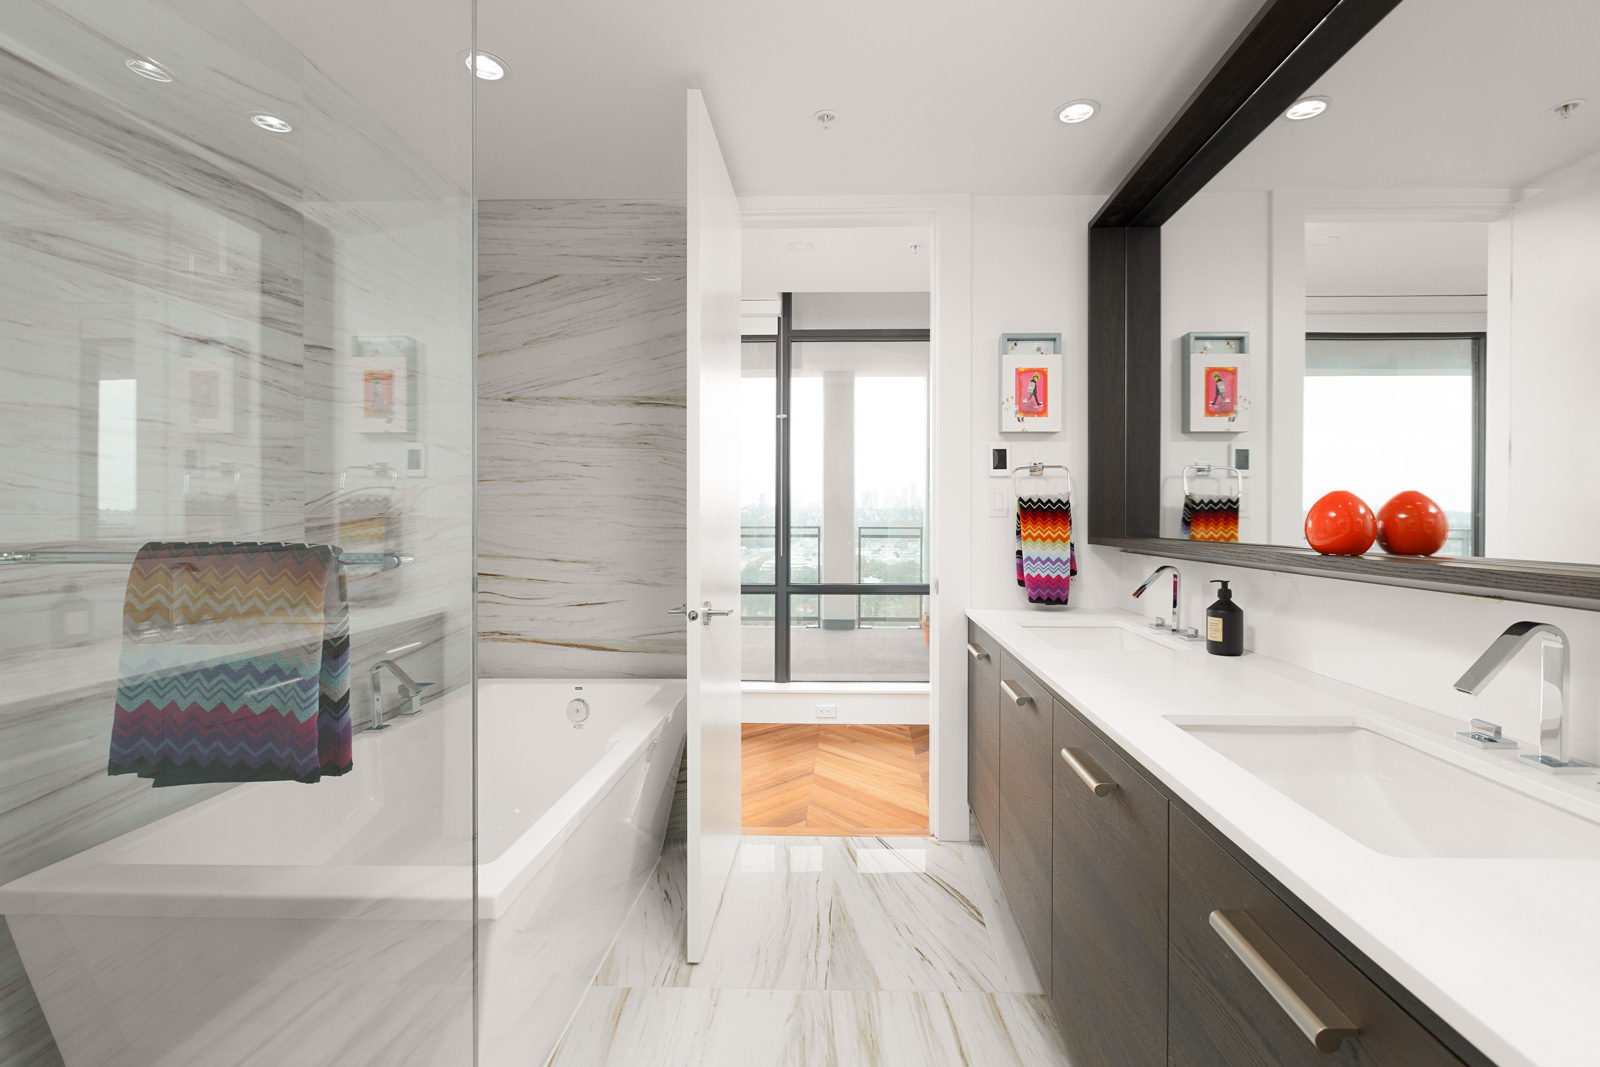 Modern bathroom with double sinks and under-the-sink storage, with a large mirror overhead. Glass doors enclose the bathtub, and the room is lit with ceiling lights in a rental condo in Burnaby offered by Birds Nest Properties.